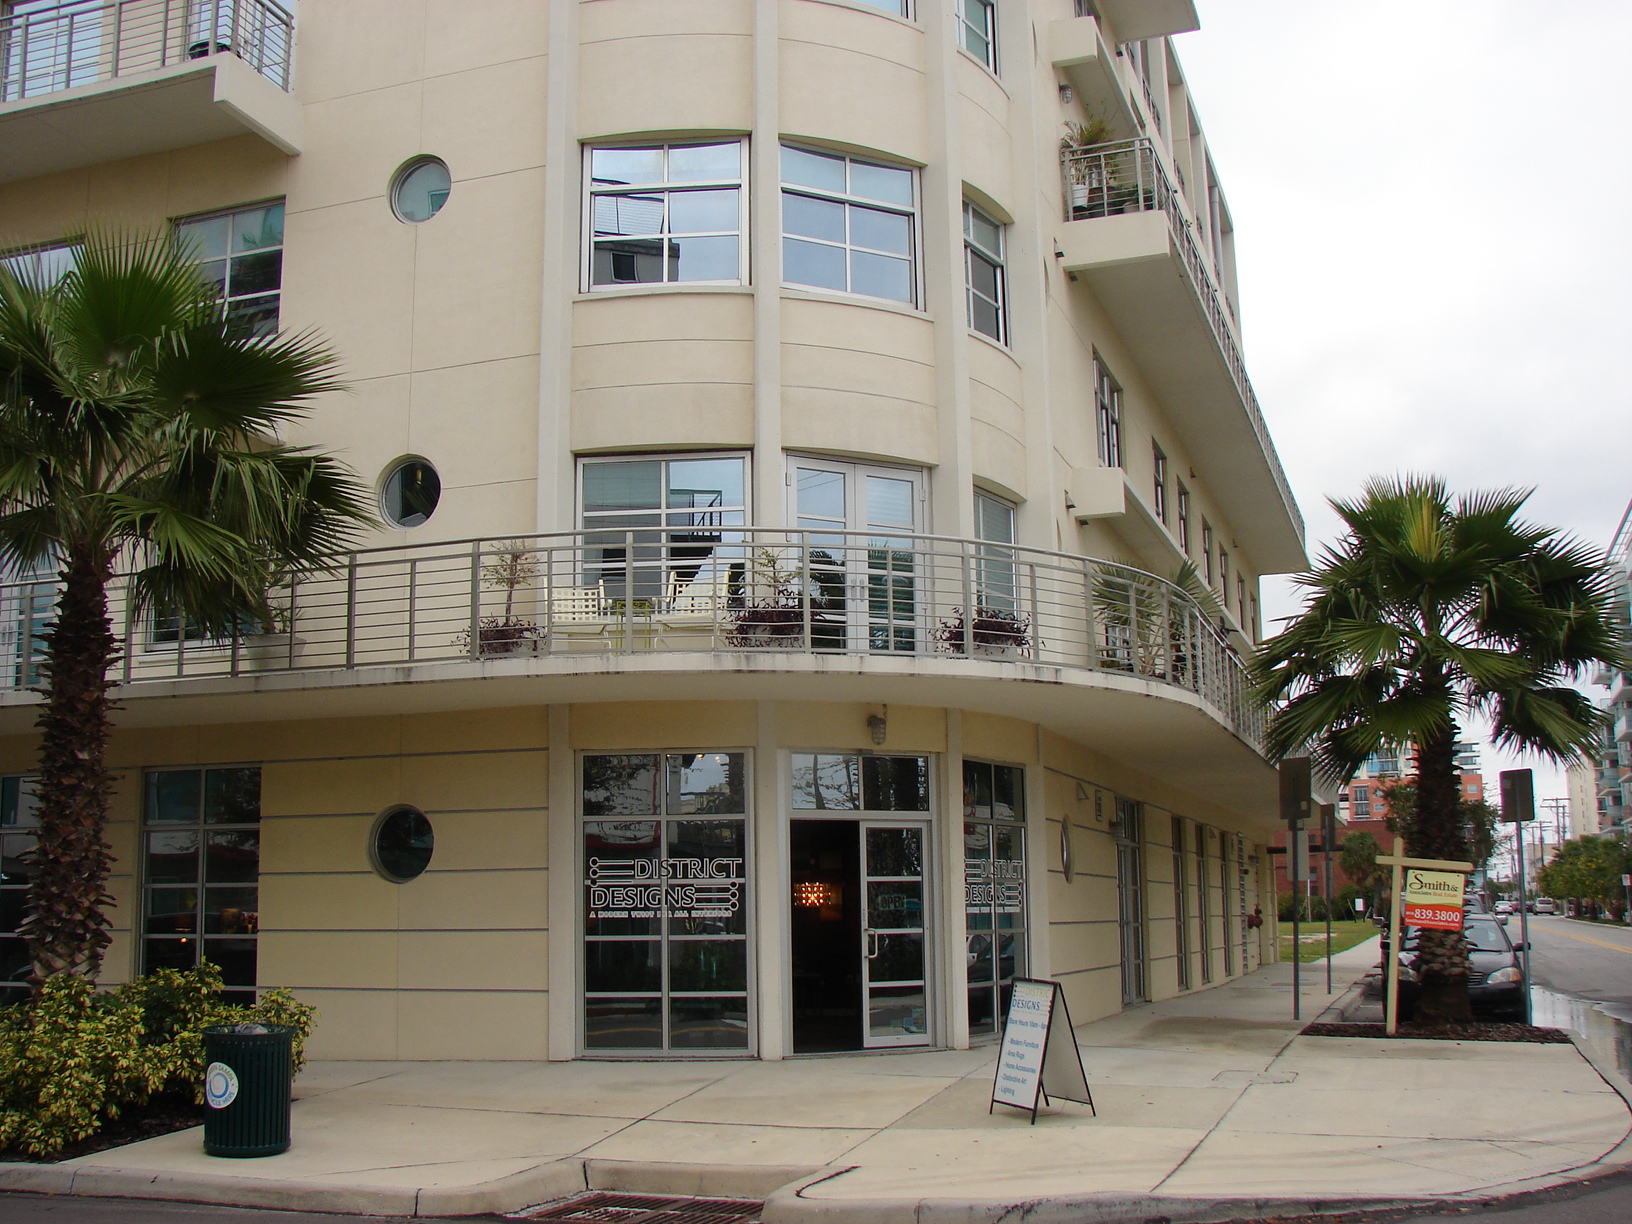 Meridian Condominiums Channelside Tampa Florida 33602